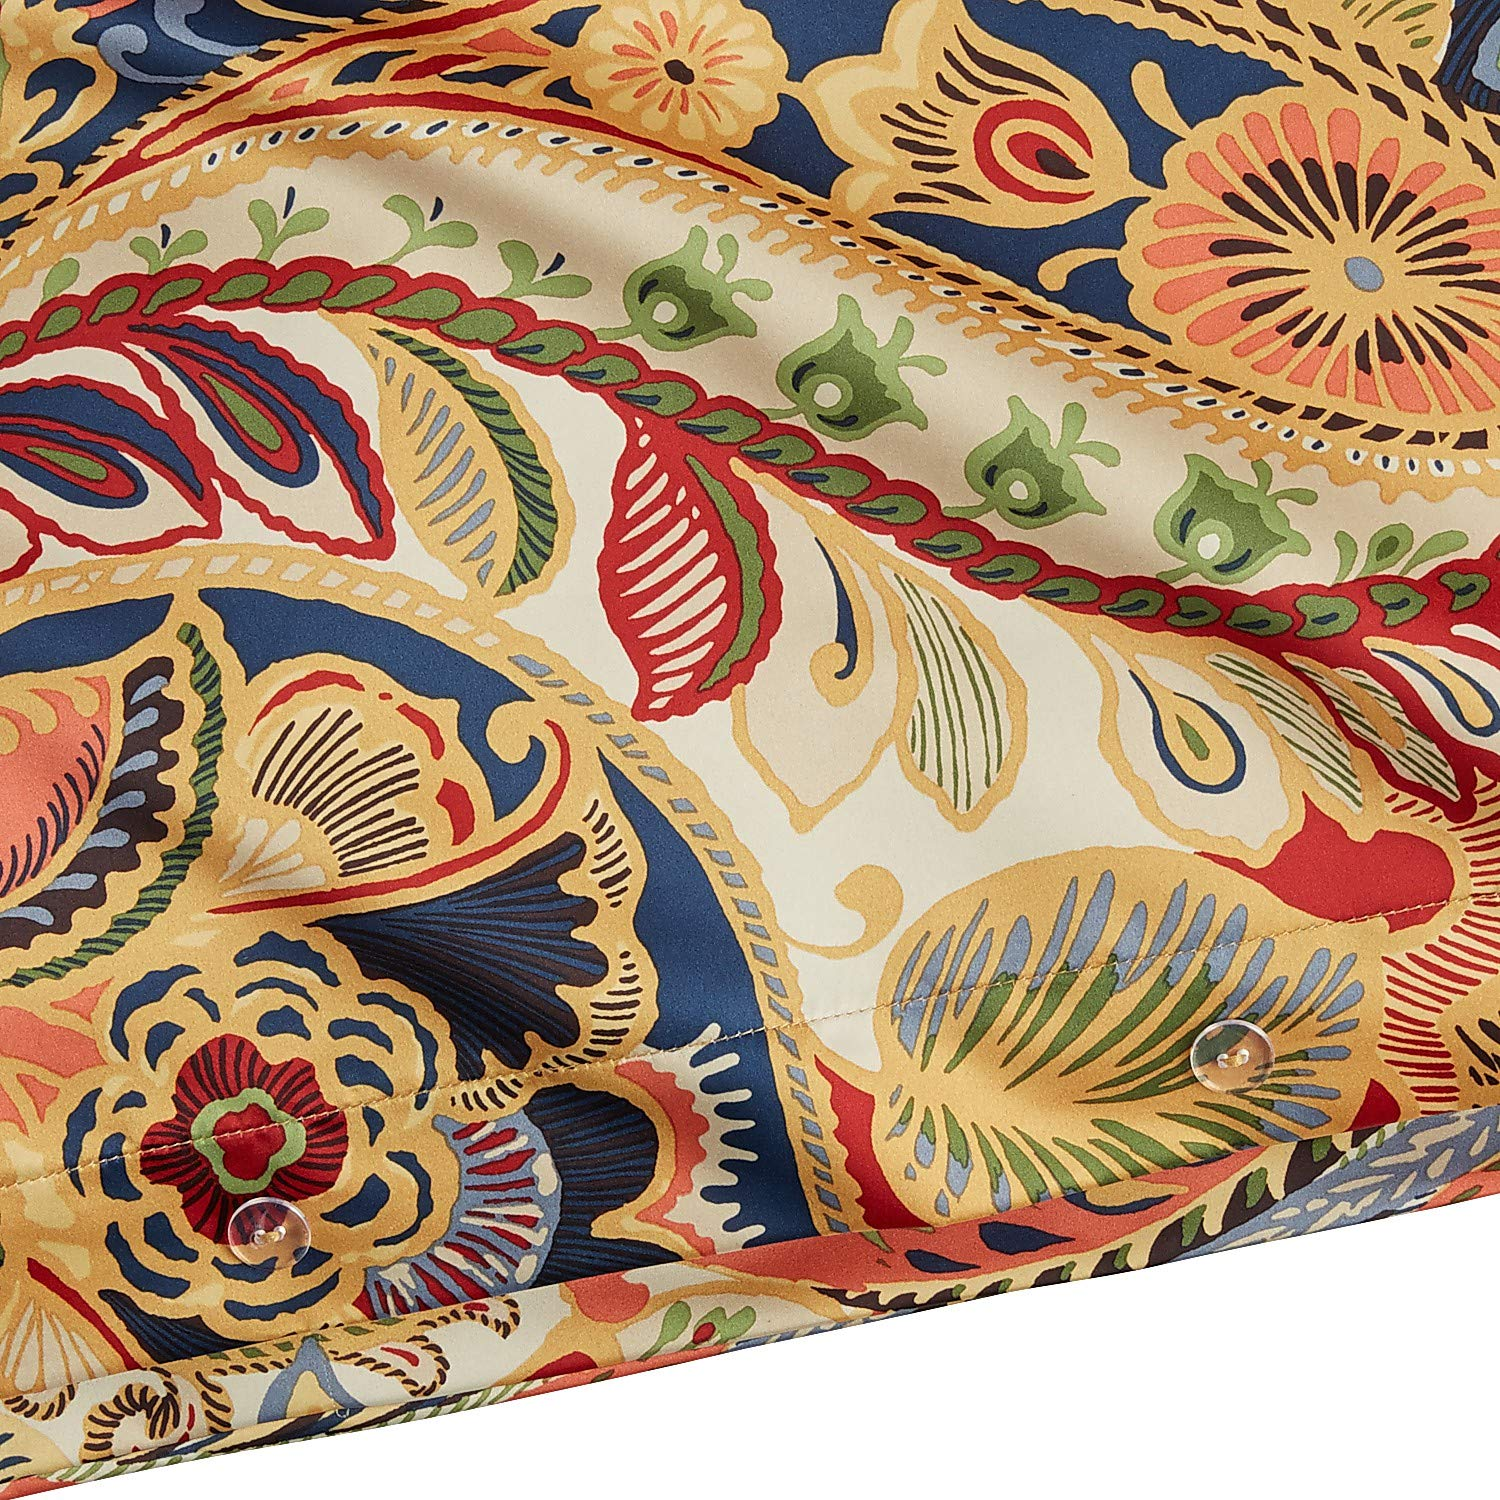 Pier 1 Imports Vibrant Paisley Full/Queen Size Bed Duvet Cover by Pier 1 Imports